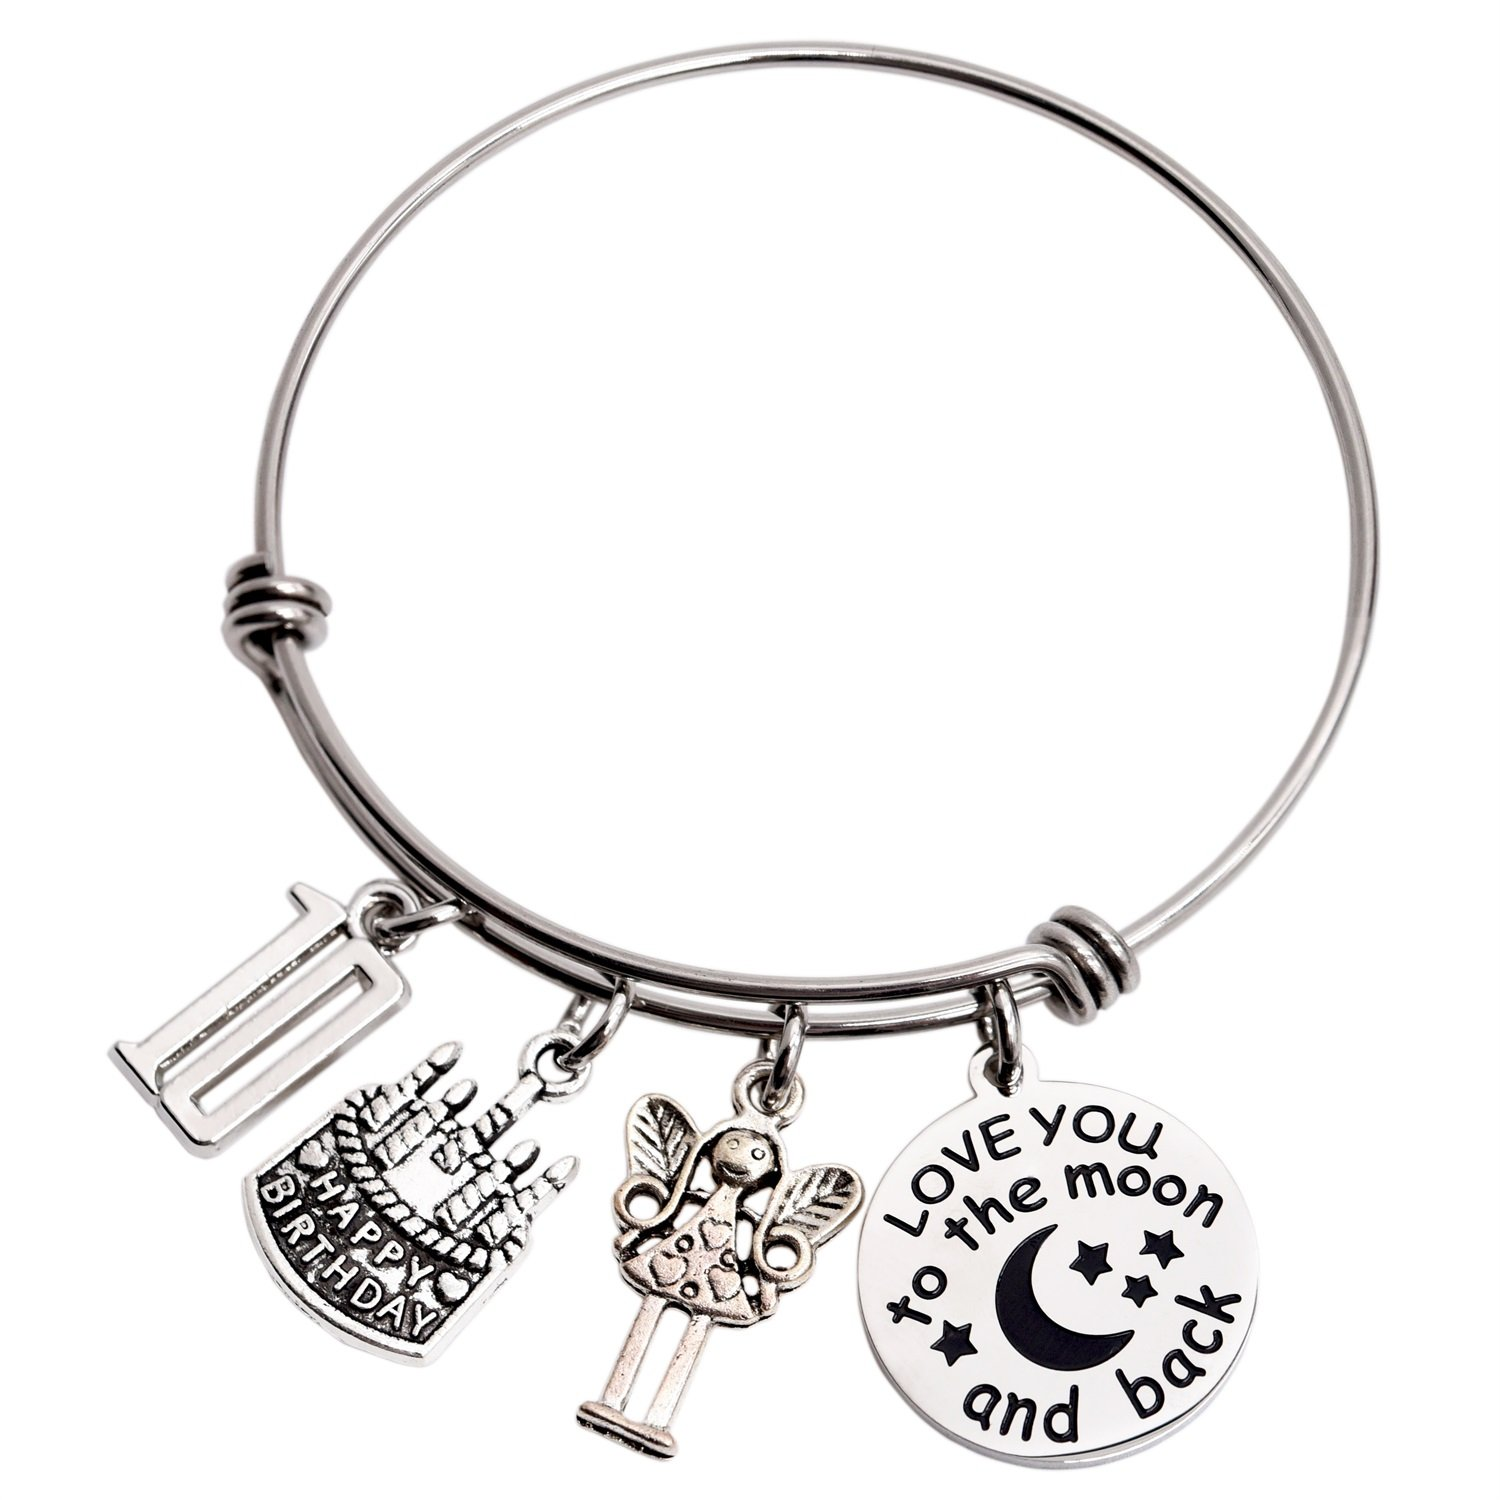 10th Birthday Gifts For Girls Gifts for Her Stainless Steel Expandable Bangle LParkin